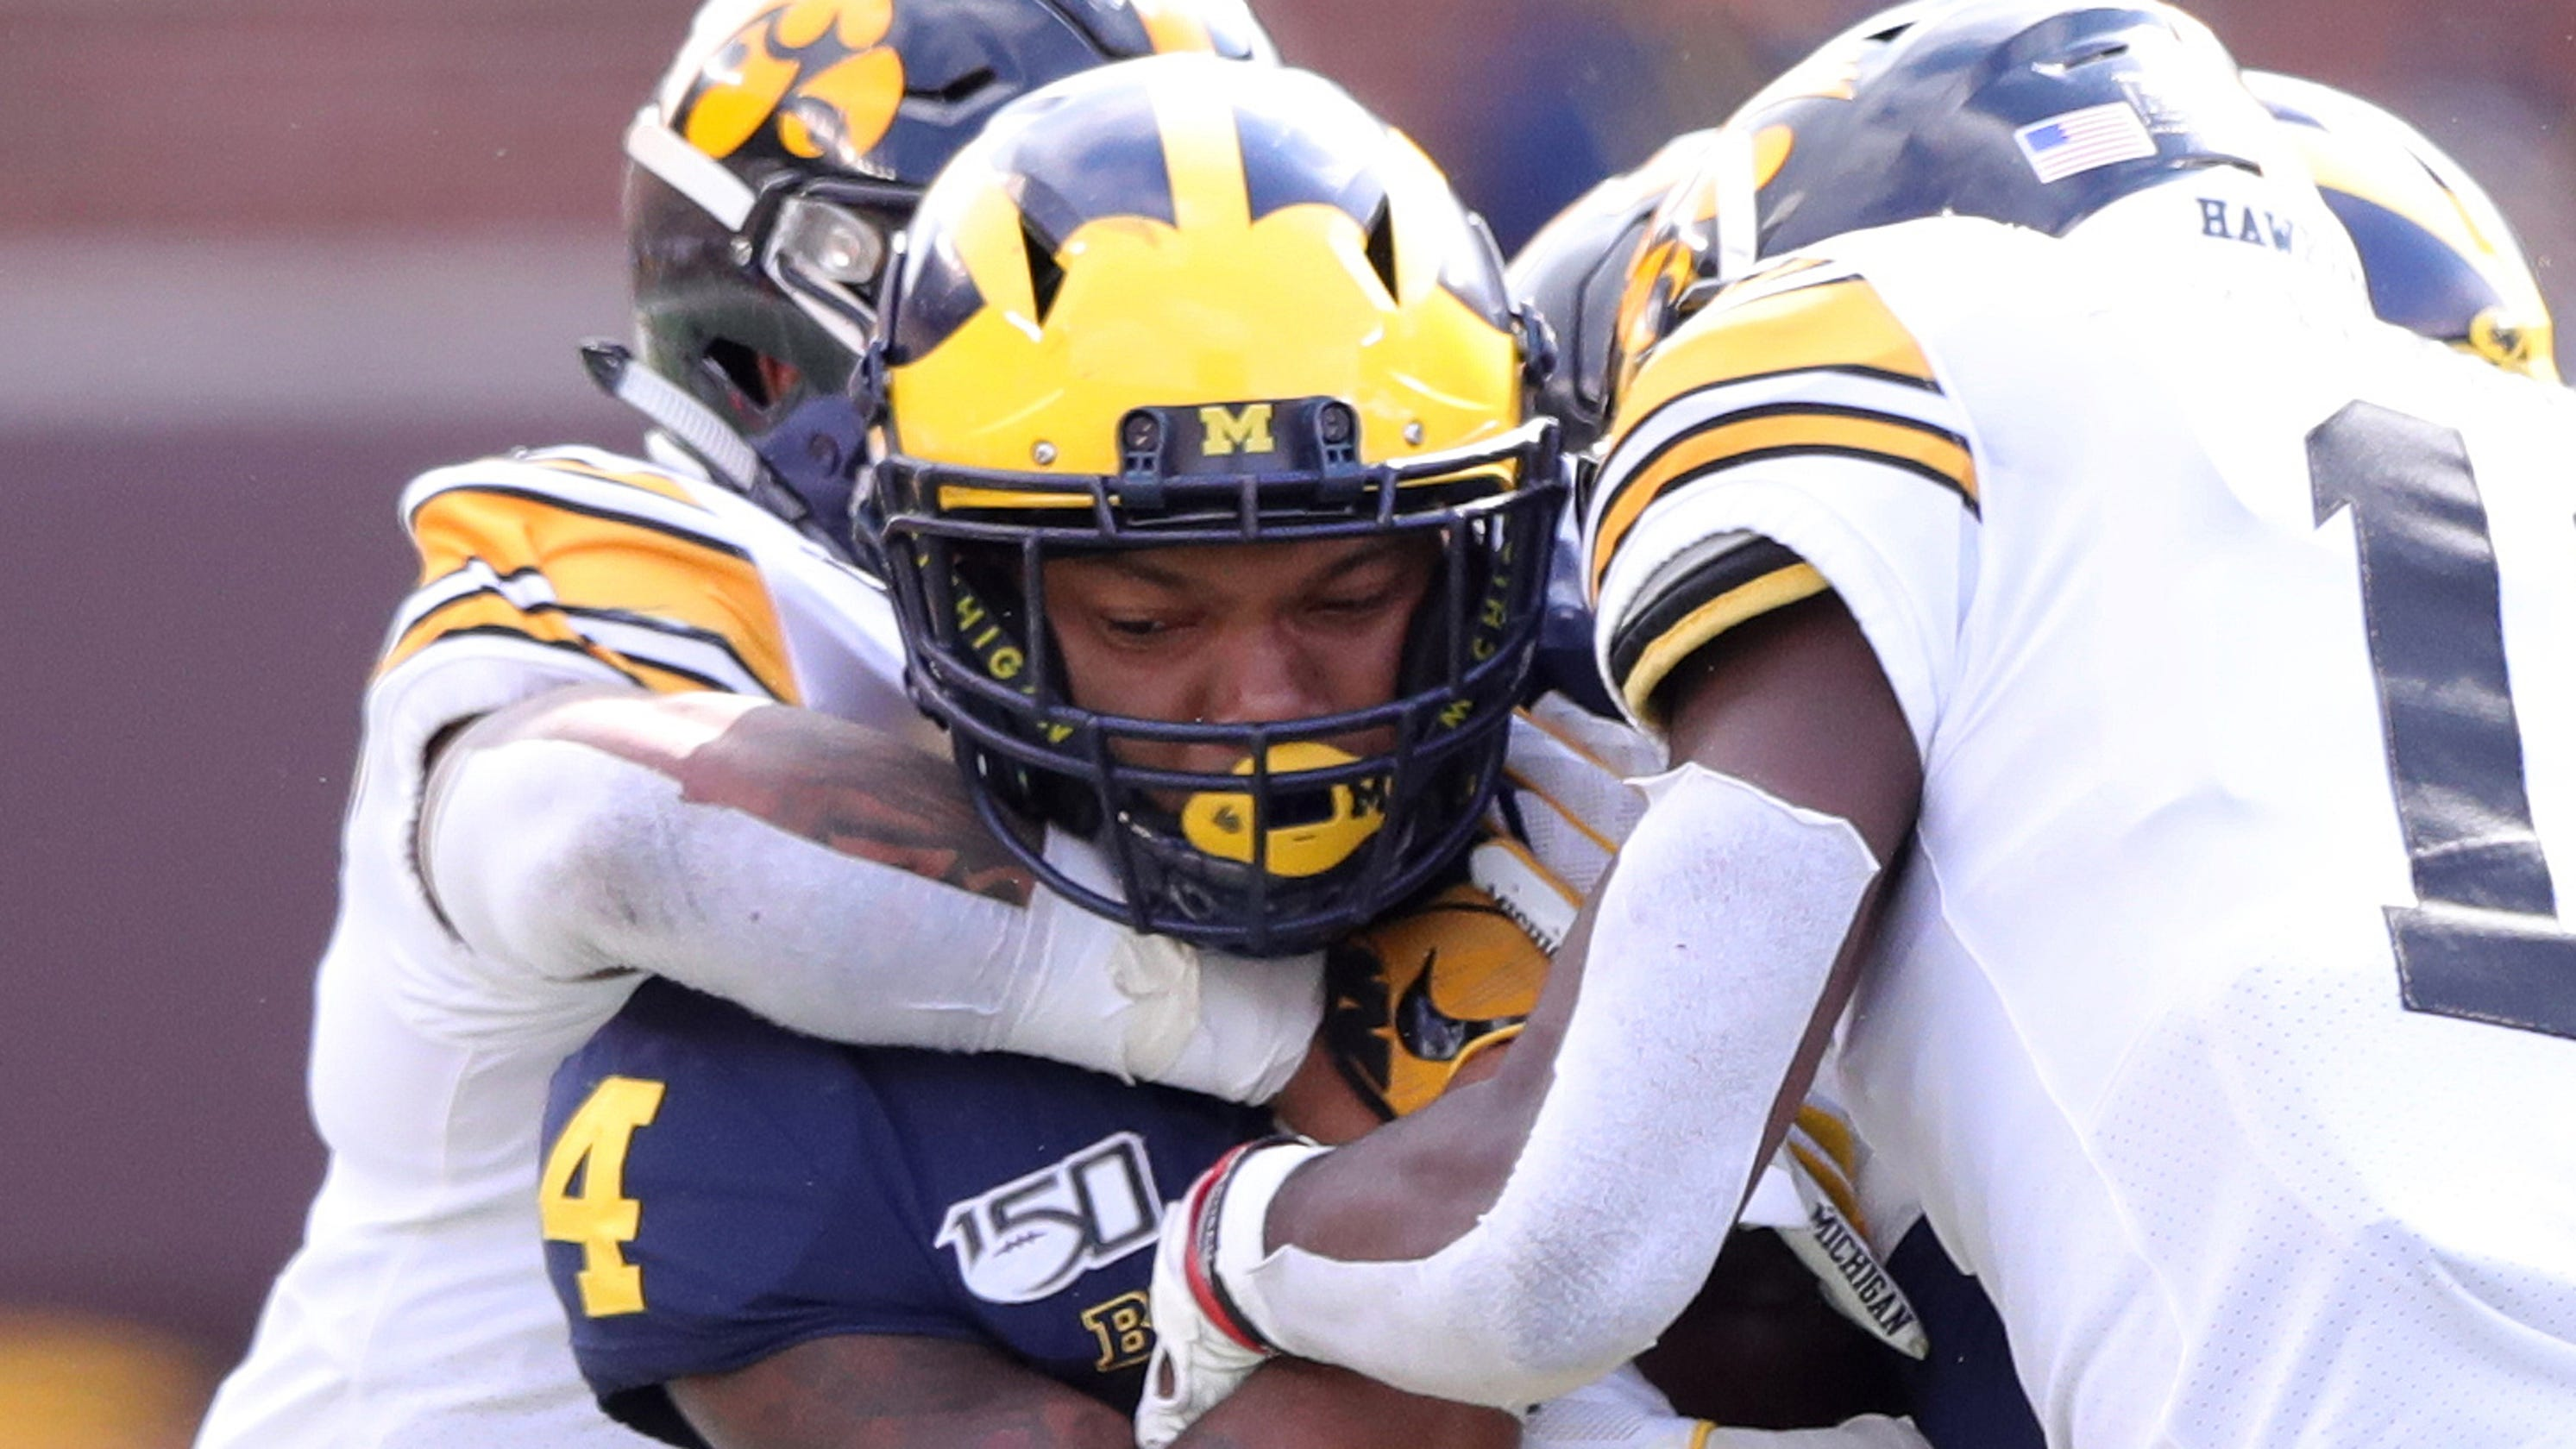 Michigan's football offense is running out of time as it scrambles for answers - Detroit Free Press